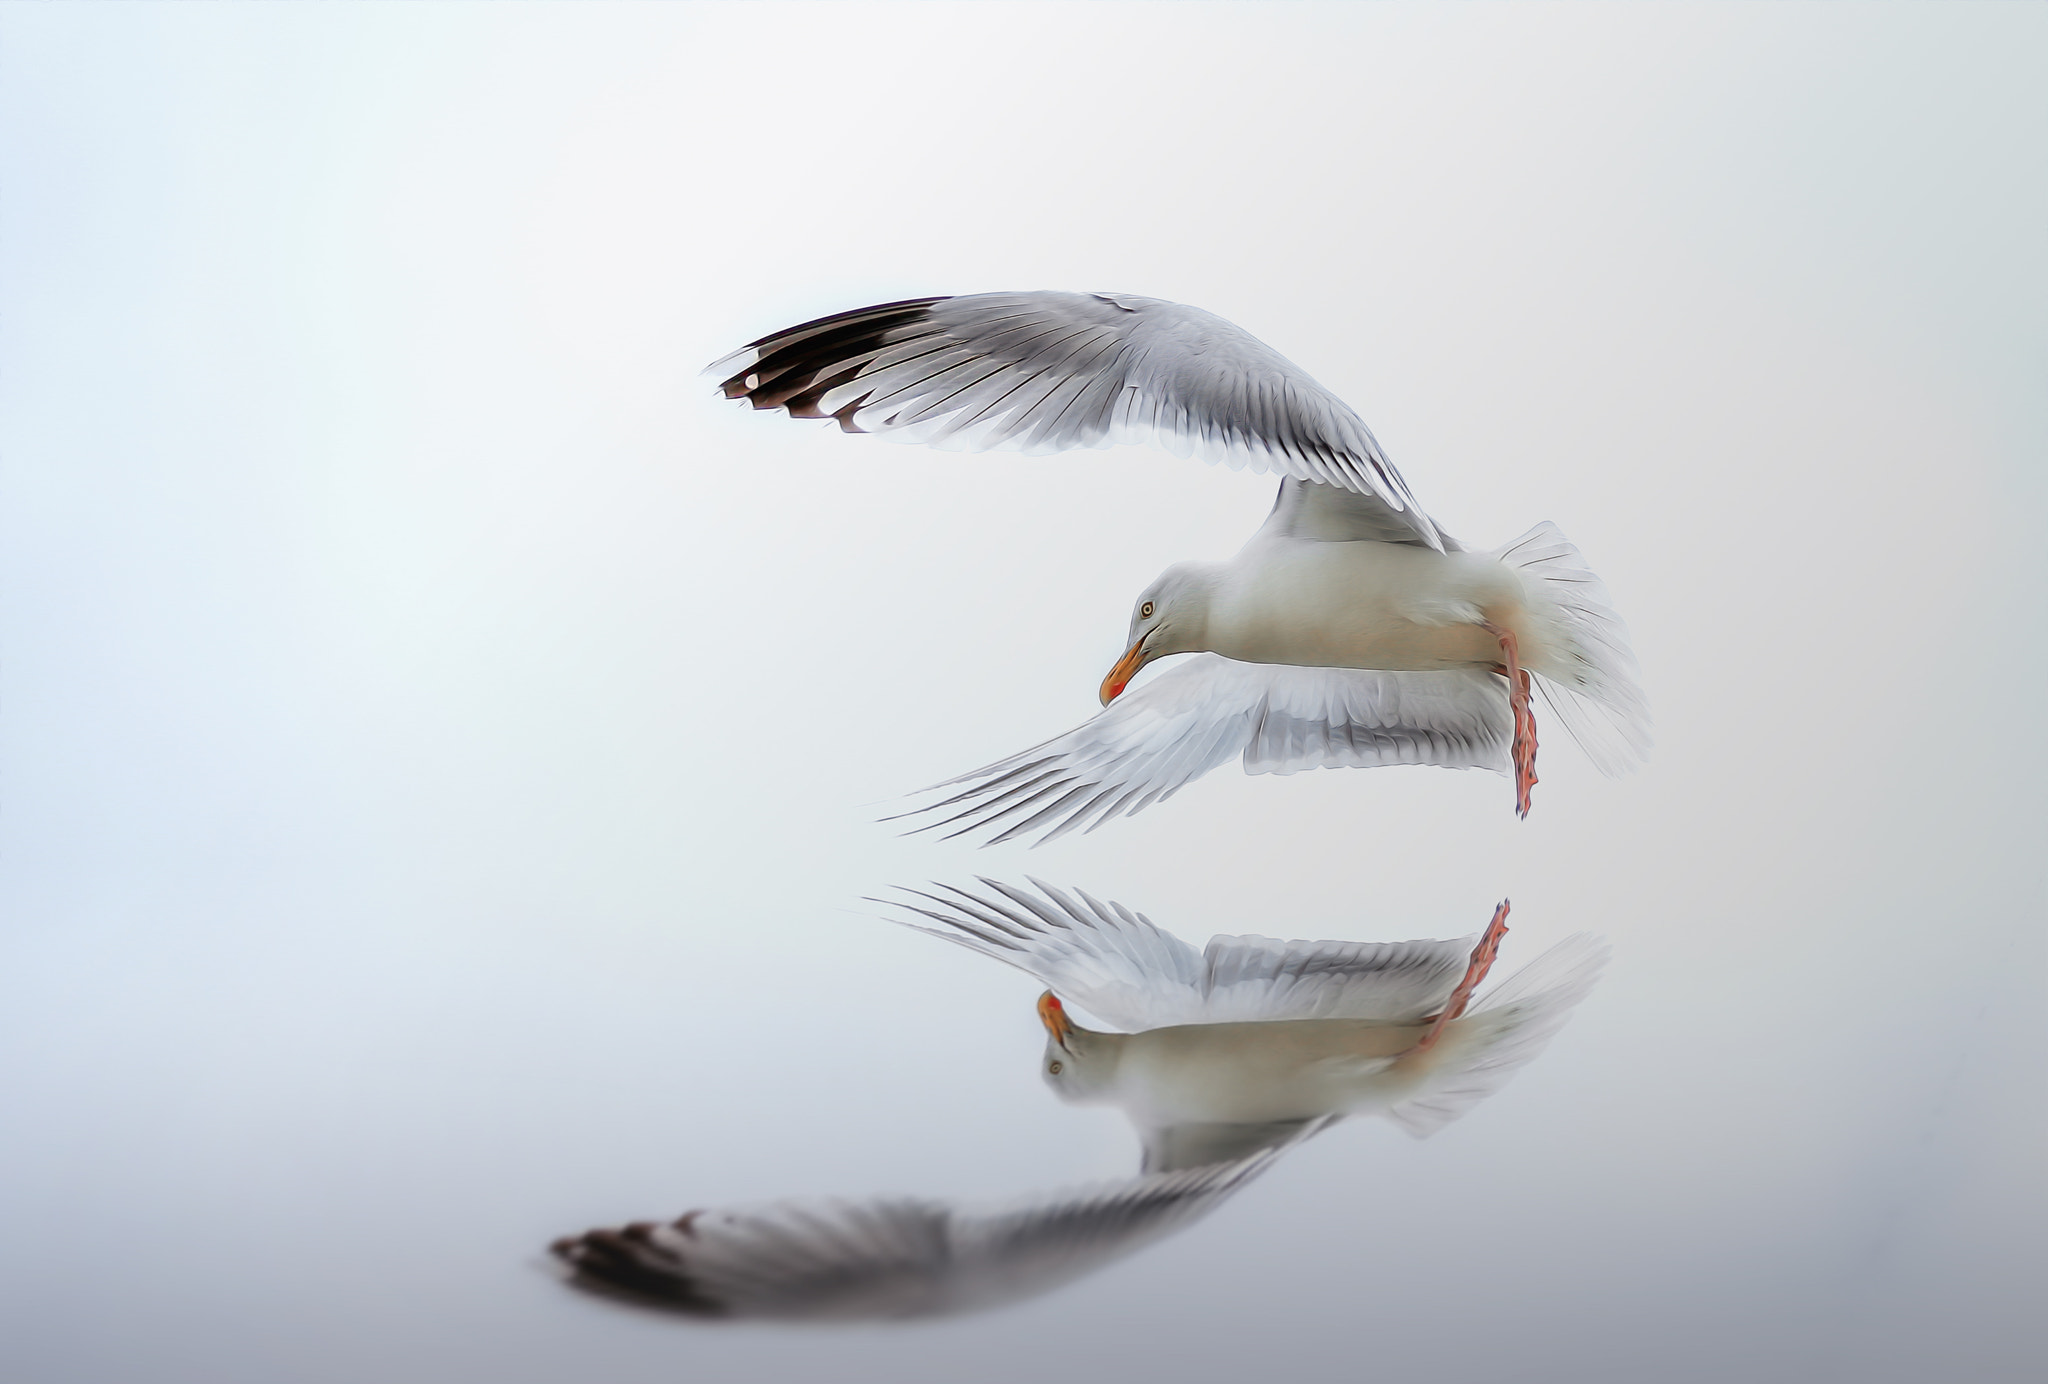 Photograph seagull by Detlef Knapp on 500px